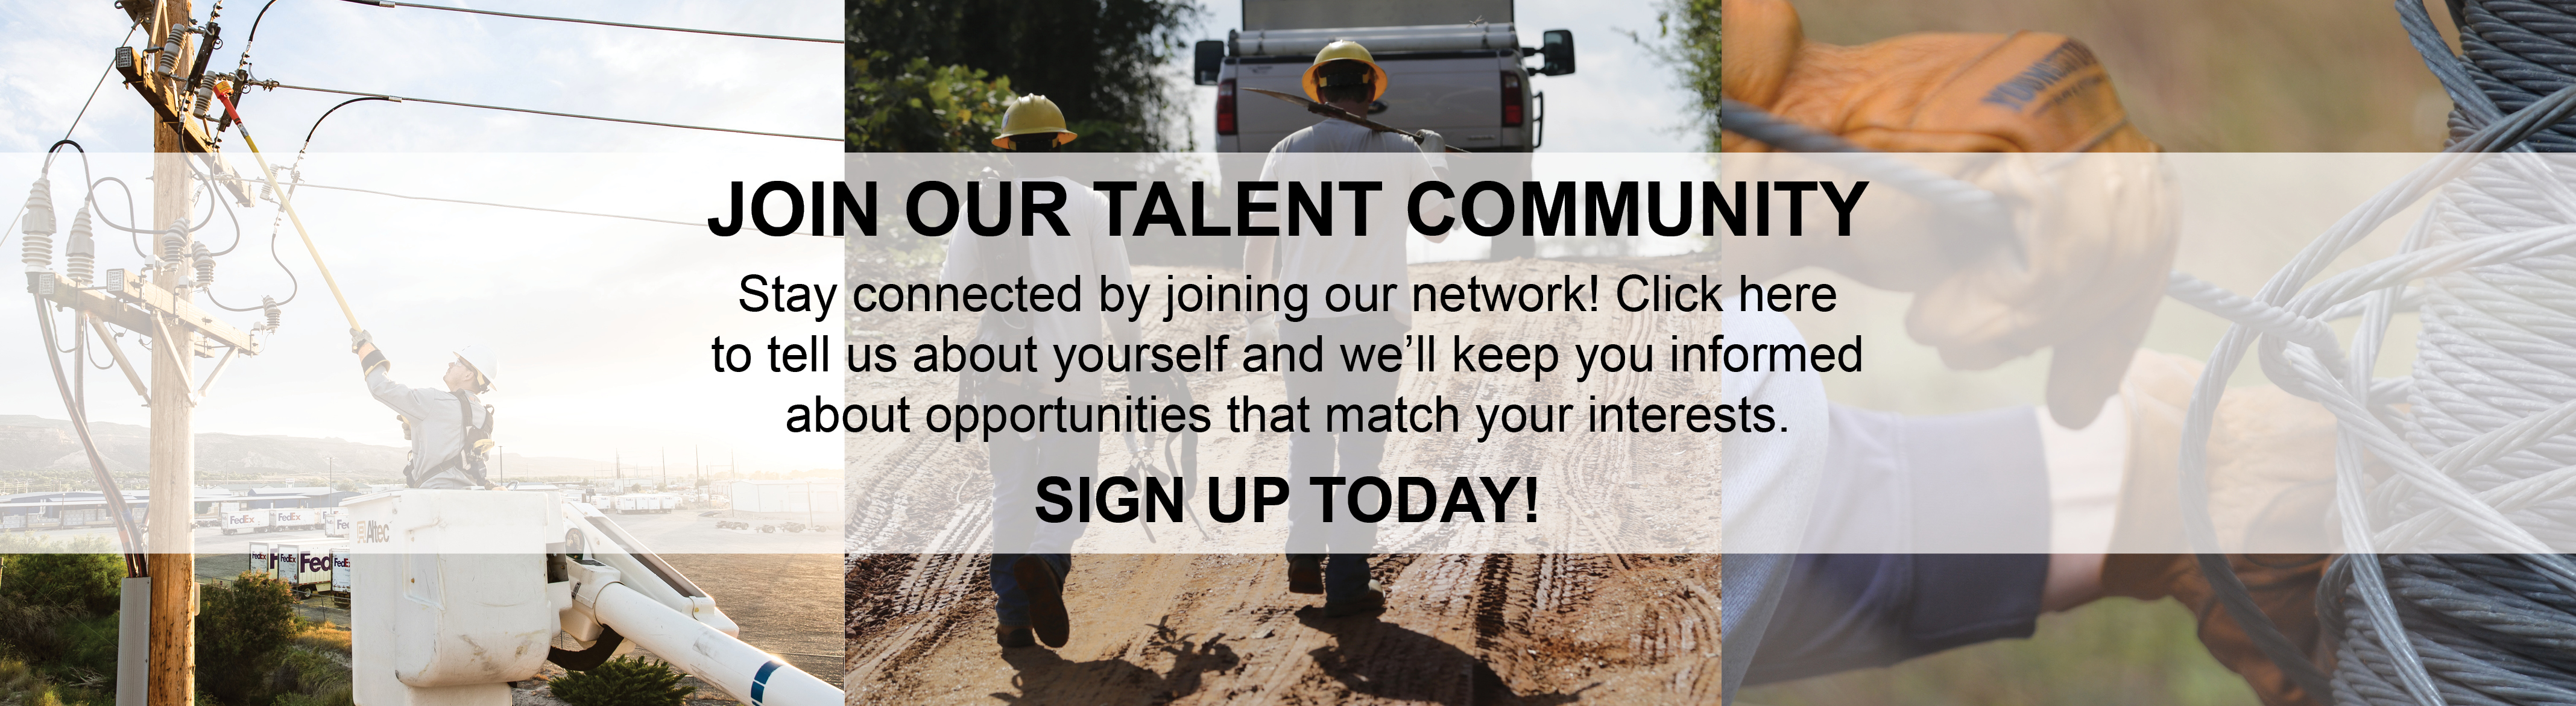 Link to form to join talent network